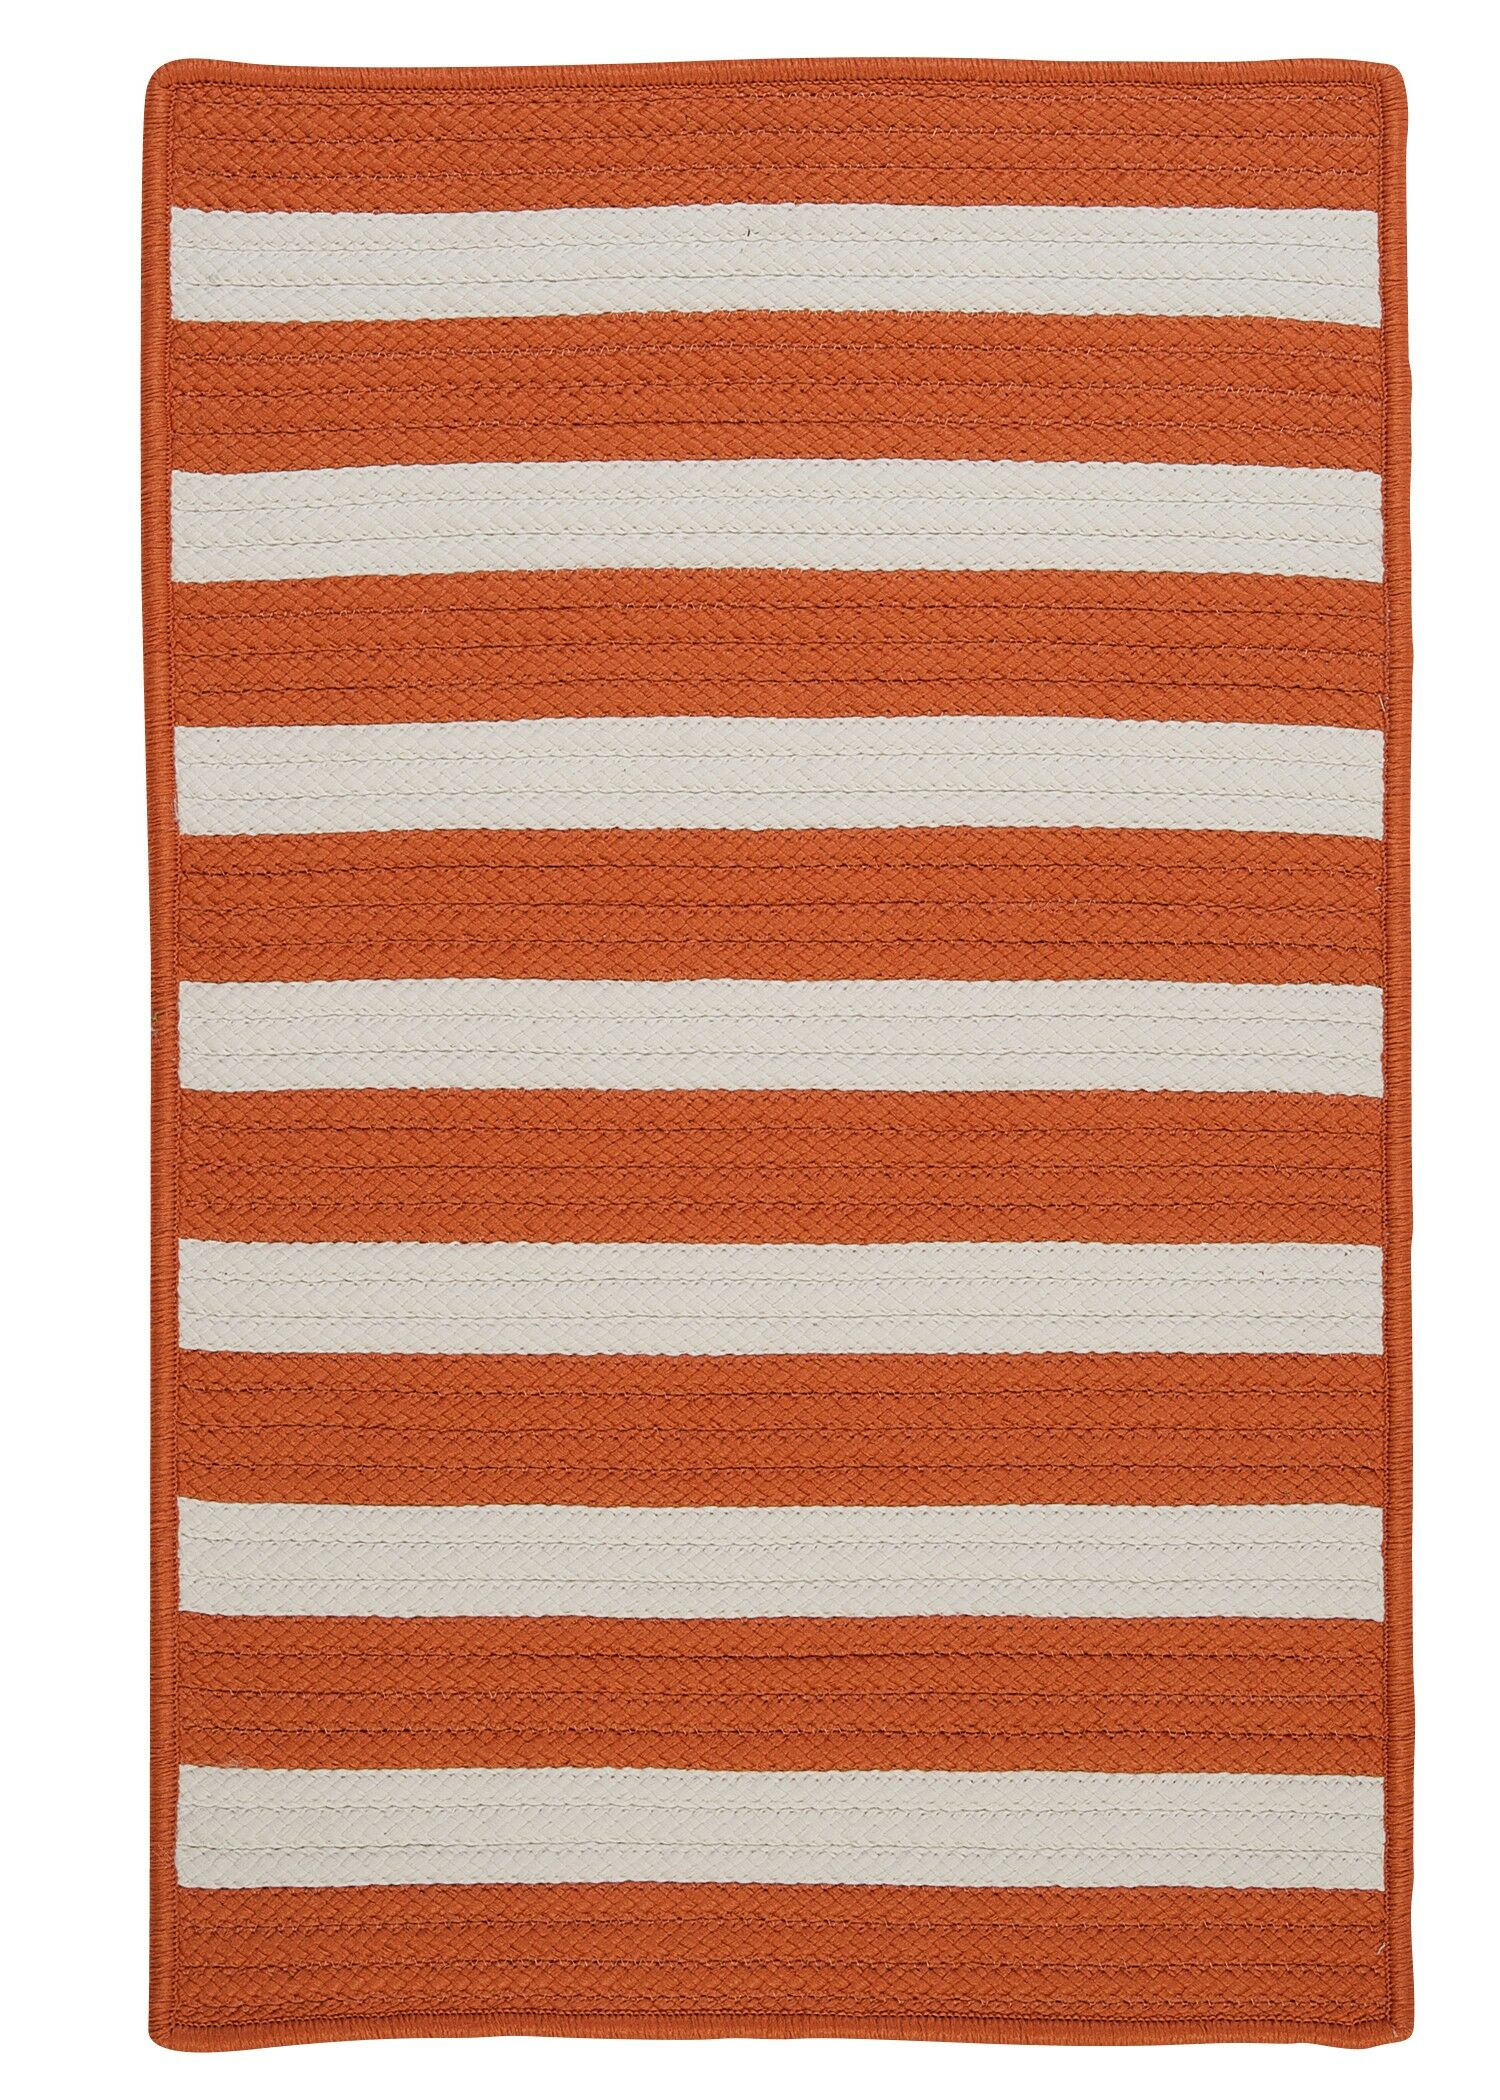 Georg Tangerine Indoor/Outdoor Area Rug Rug Size: Runner 2' x 6'